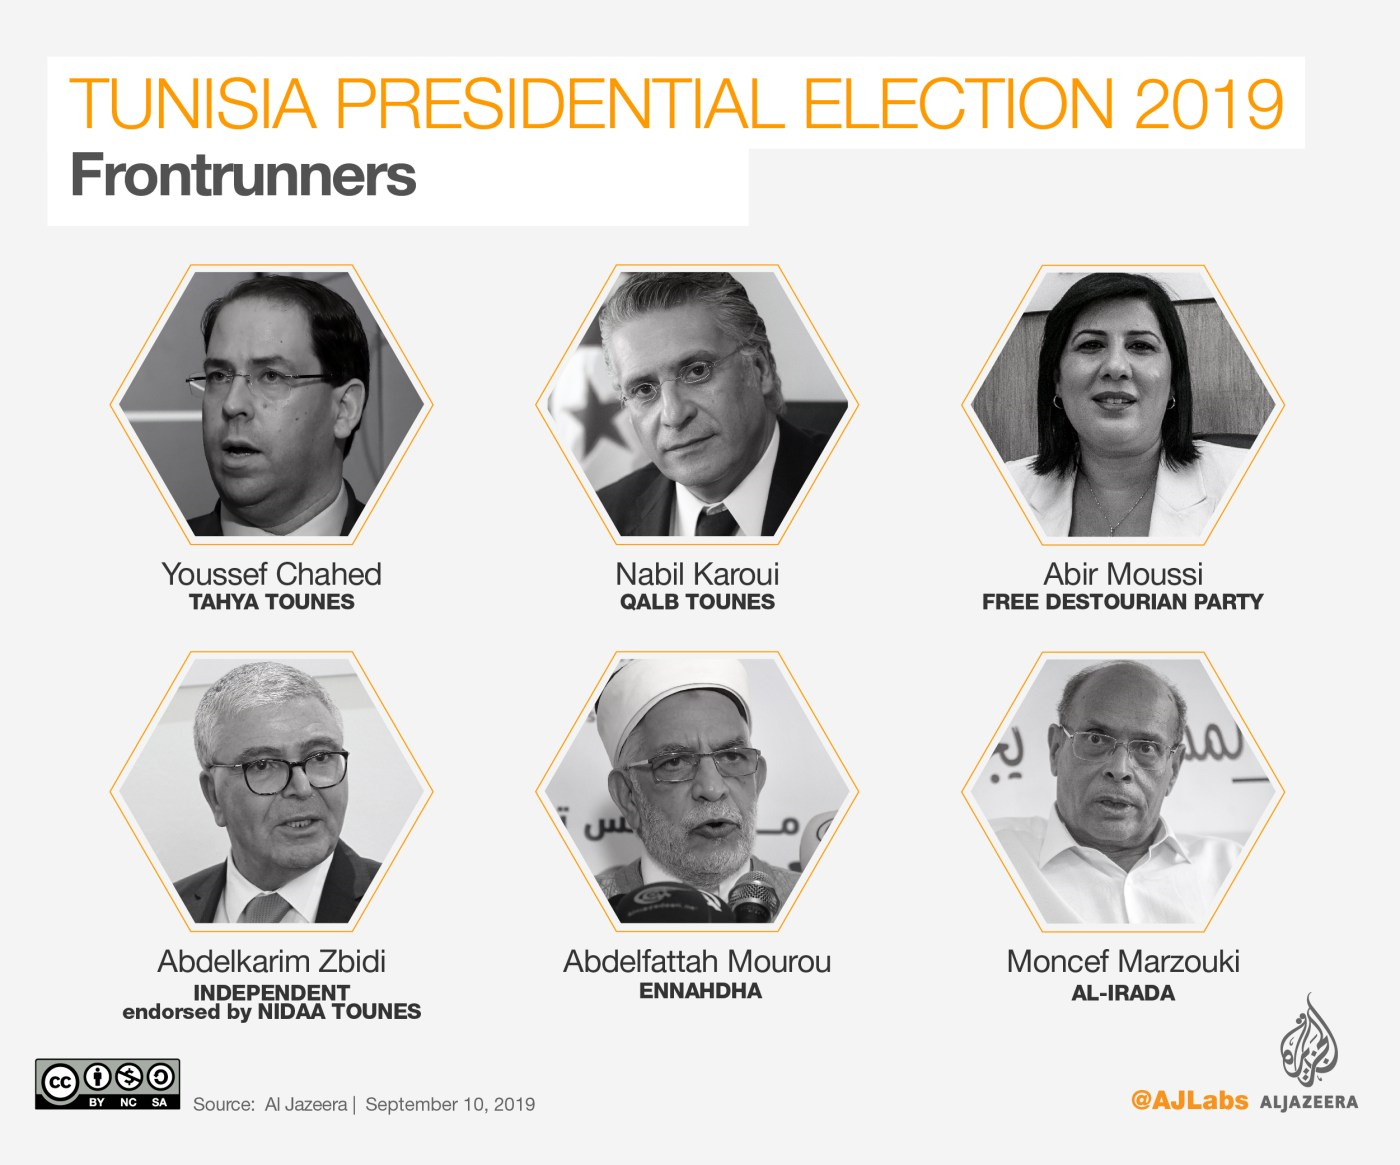 INTERACTIVE: Tunisia presidential elections 2019 - Candidates